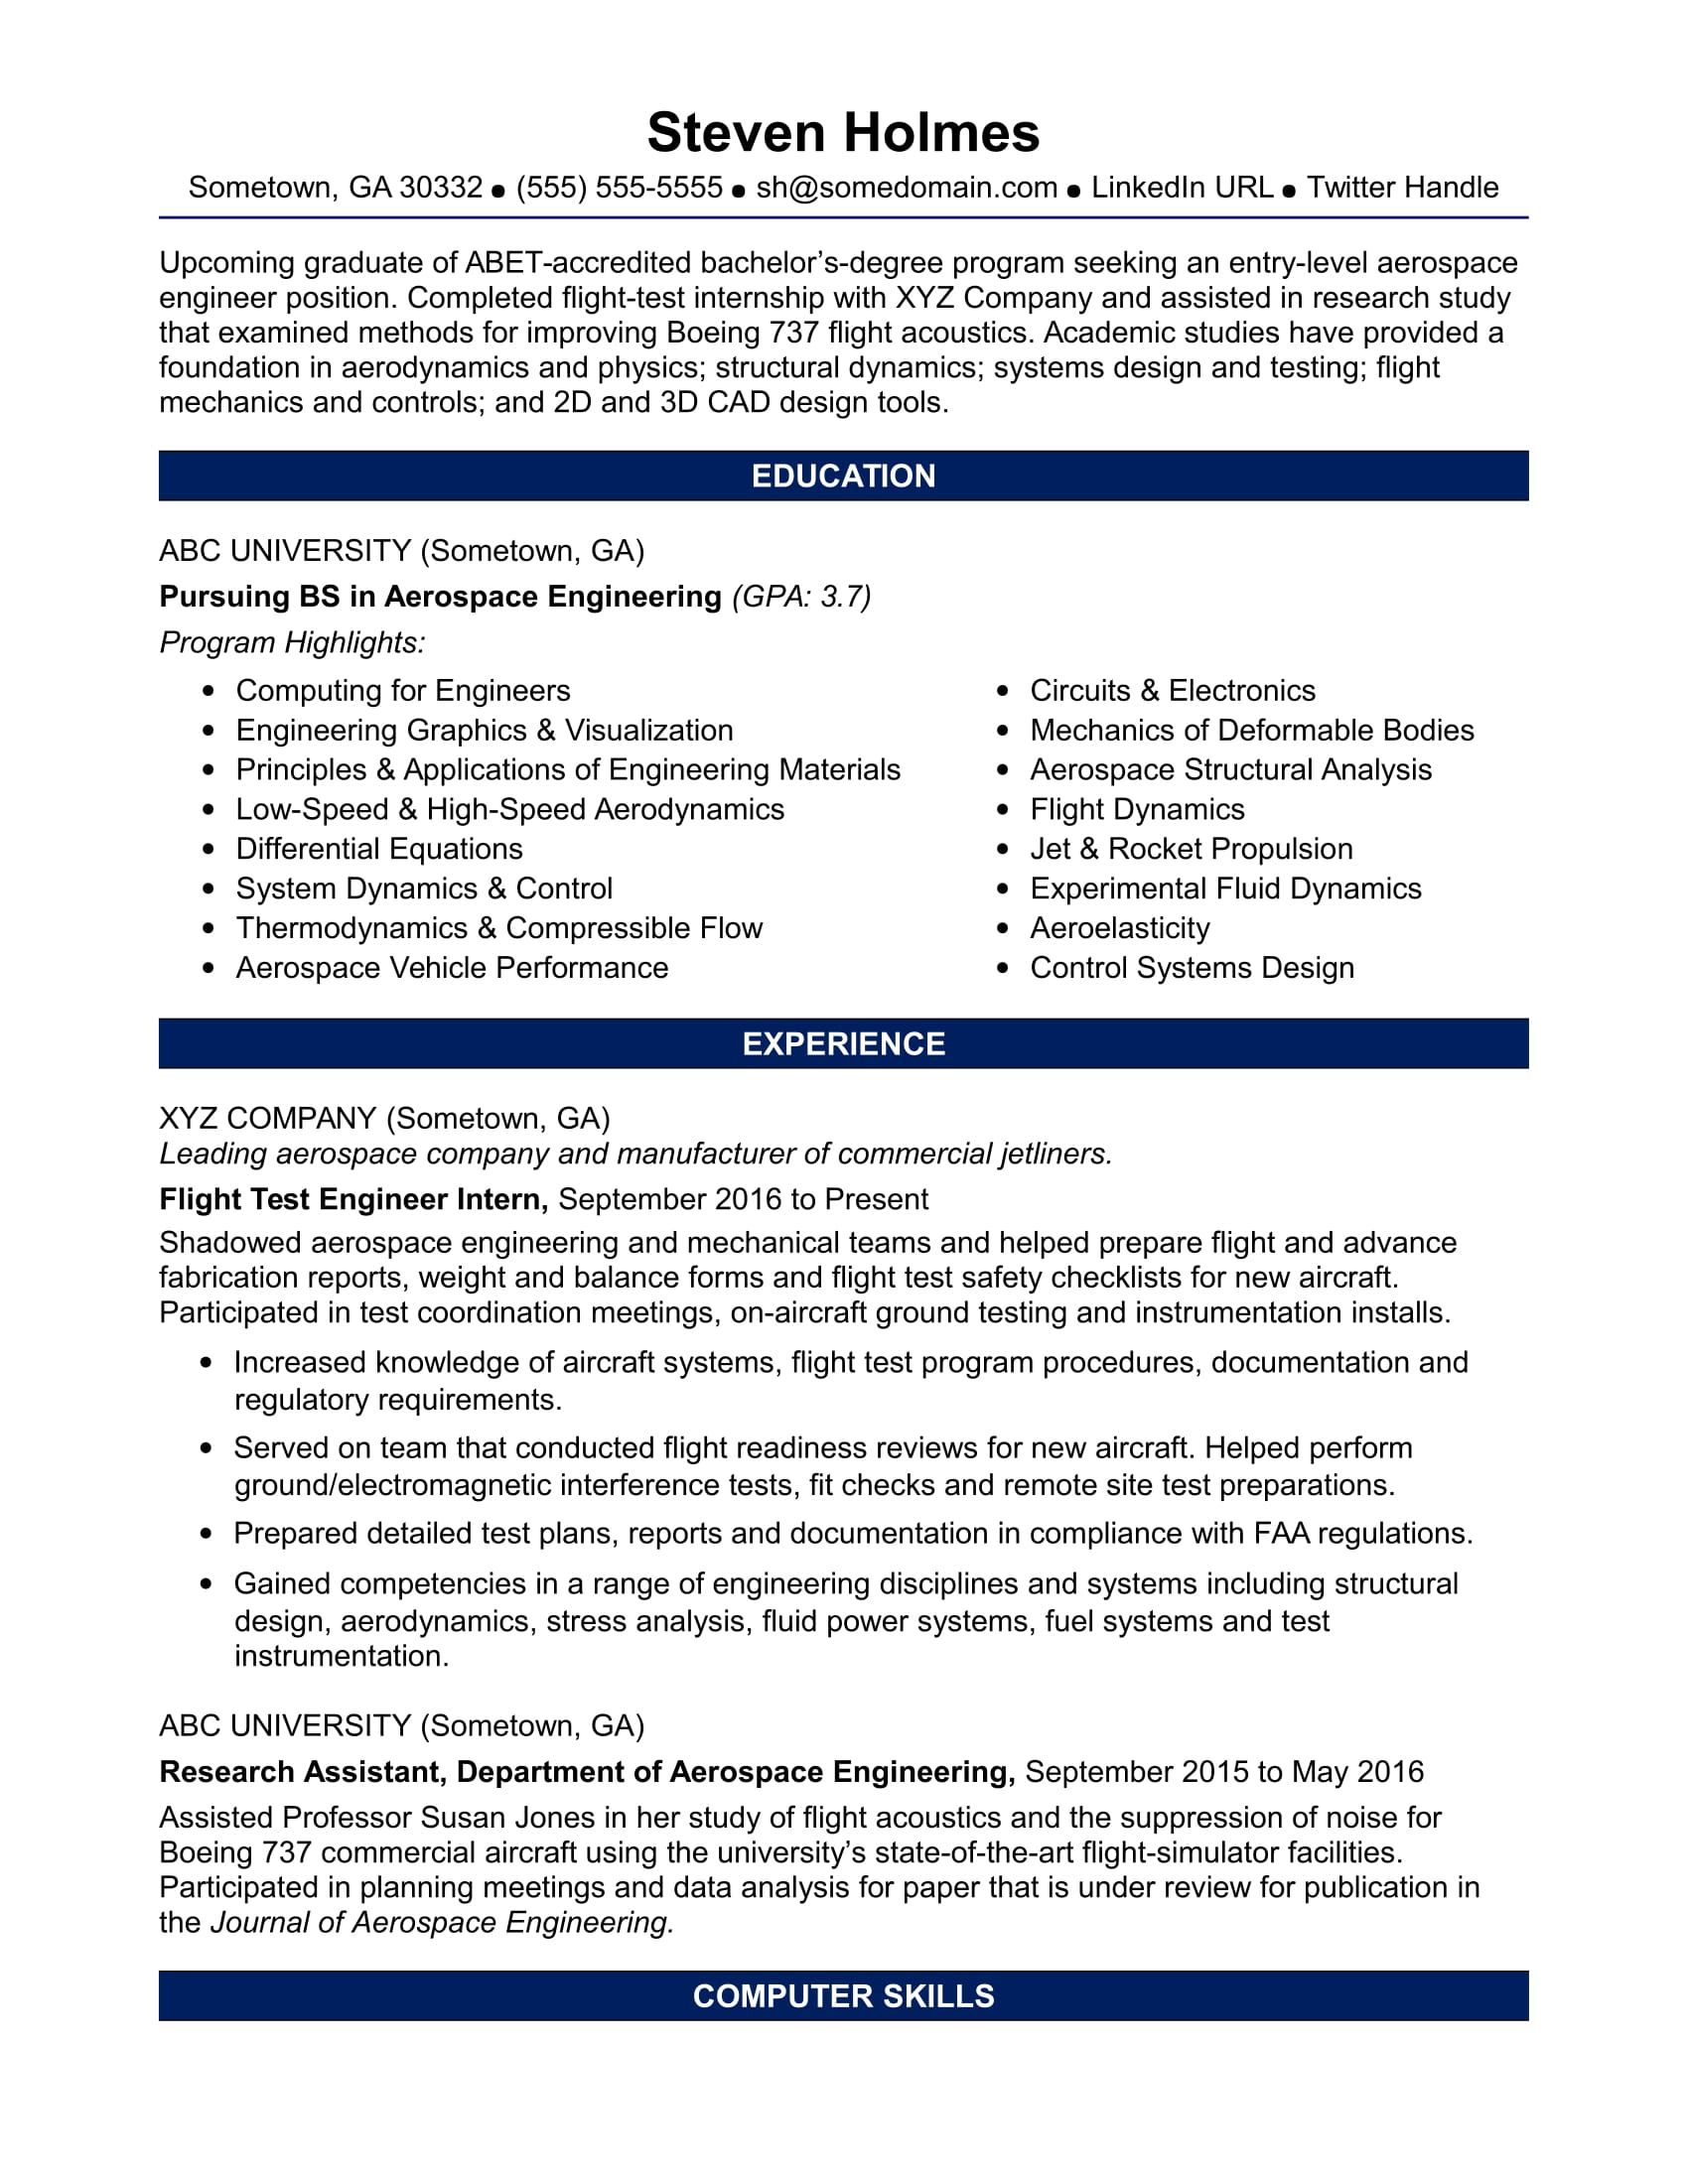 Composite Technician Cover Letter Sample Resume For An Entry Level Aerospace Engineer Monster